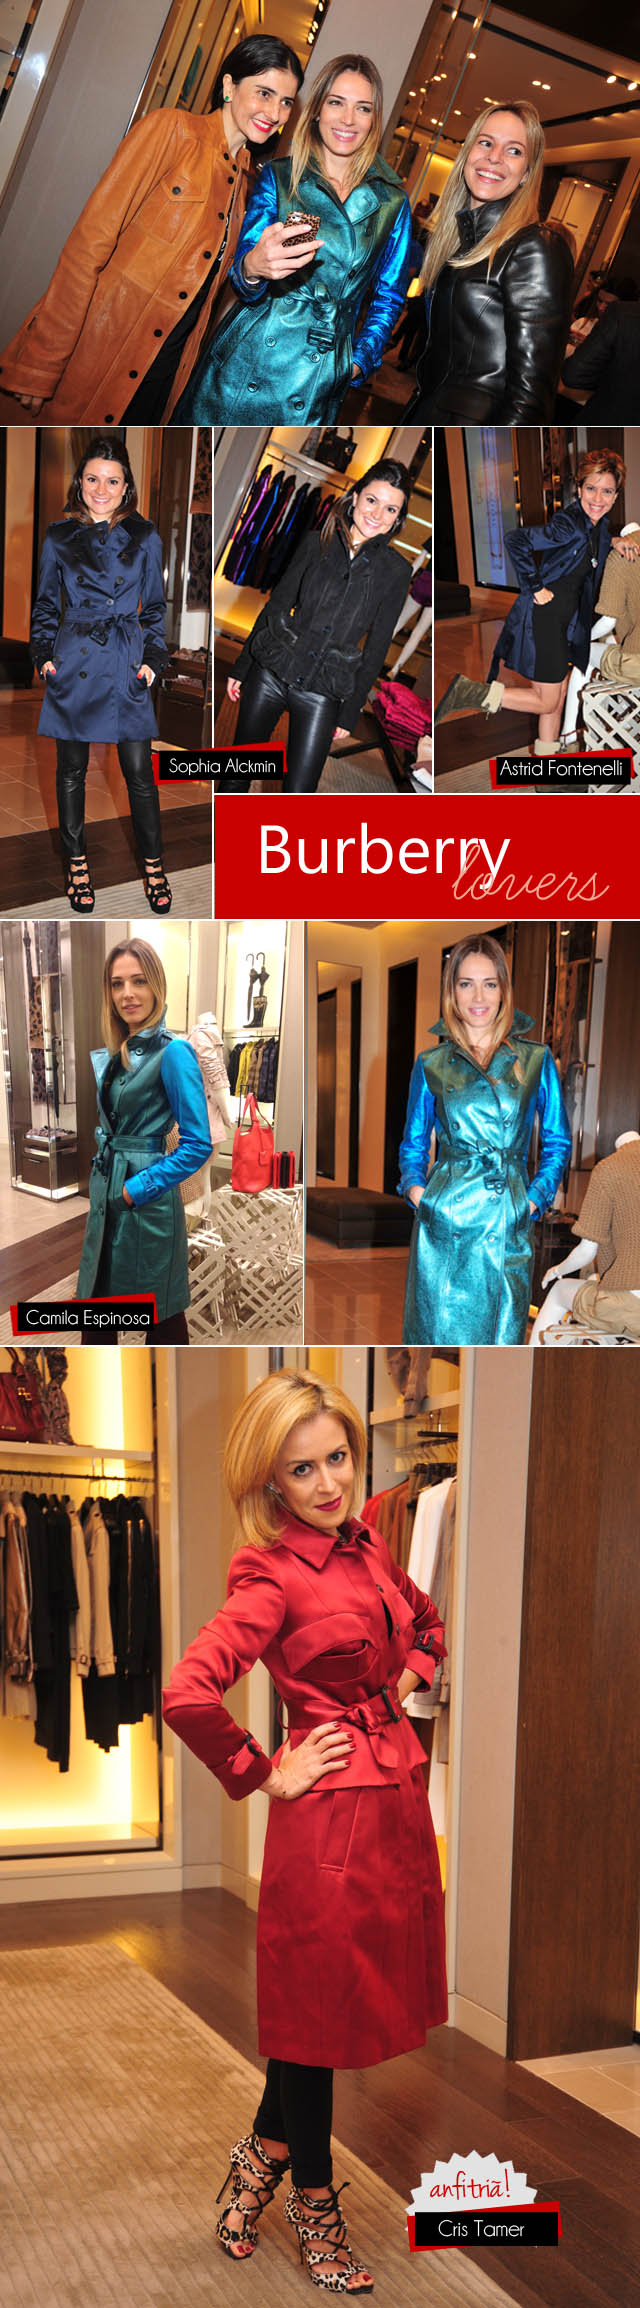 blog-da-alice-ferraz-evento-burberry-trench-coats